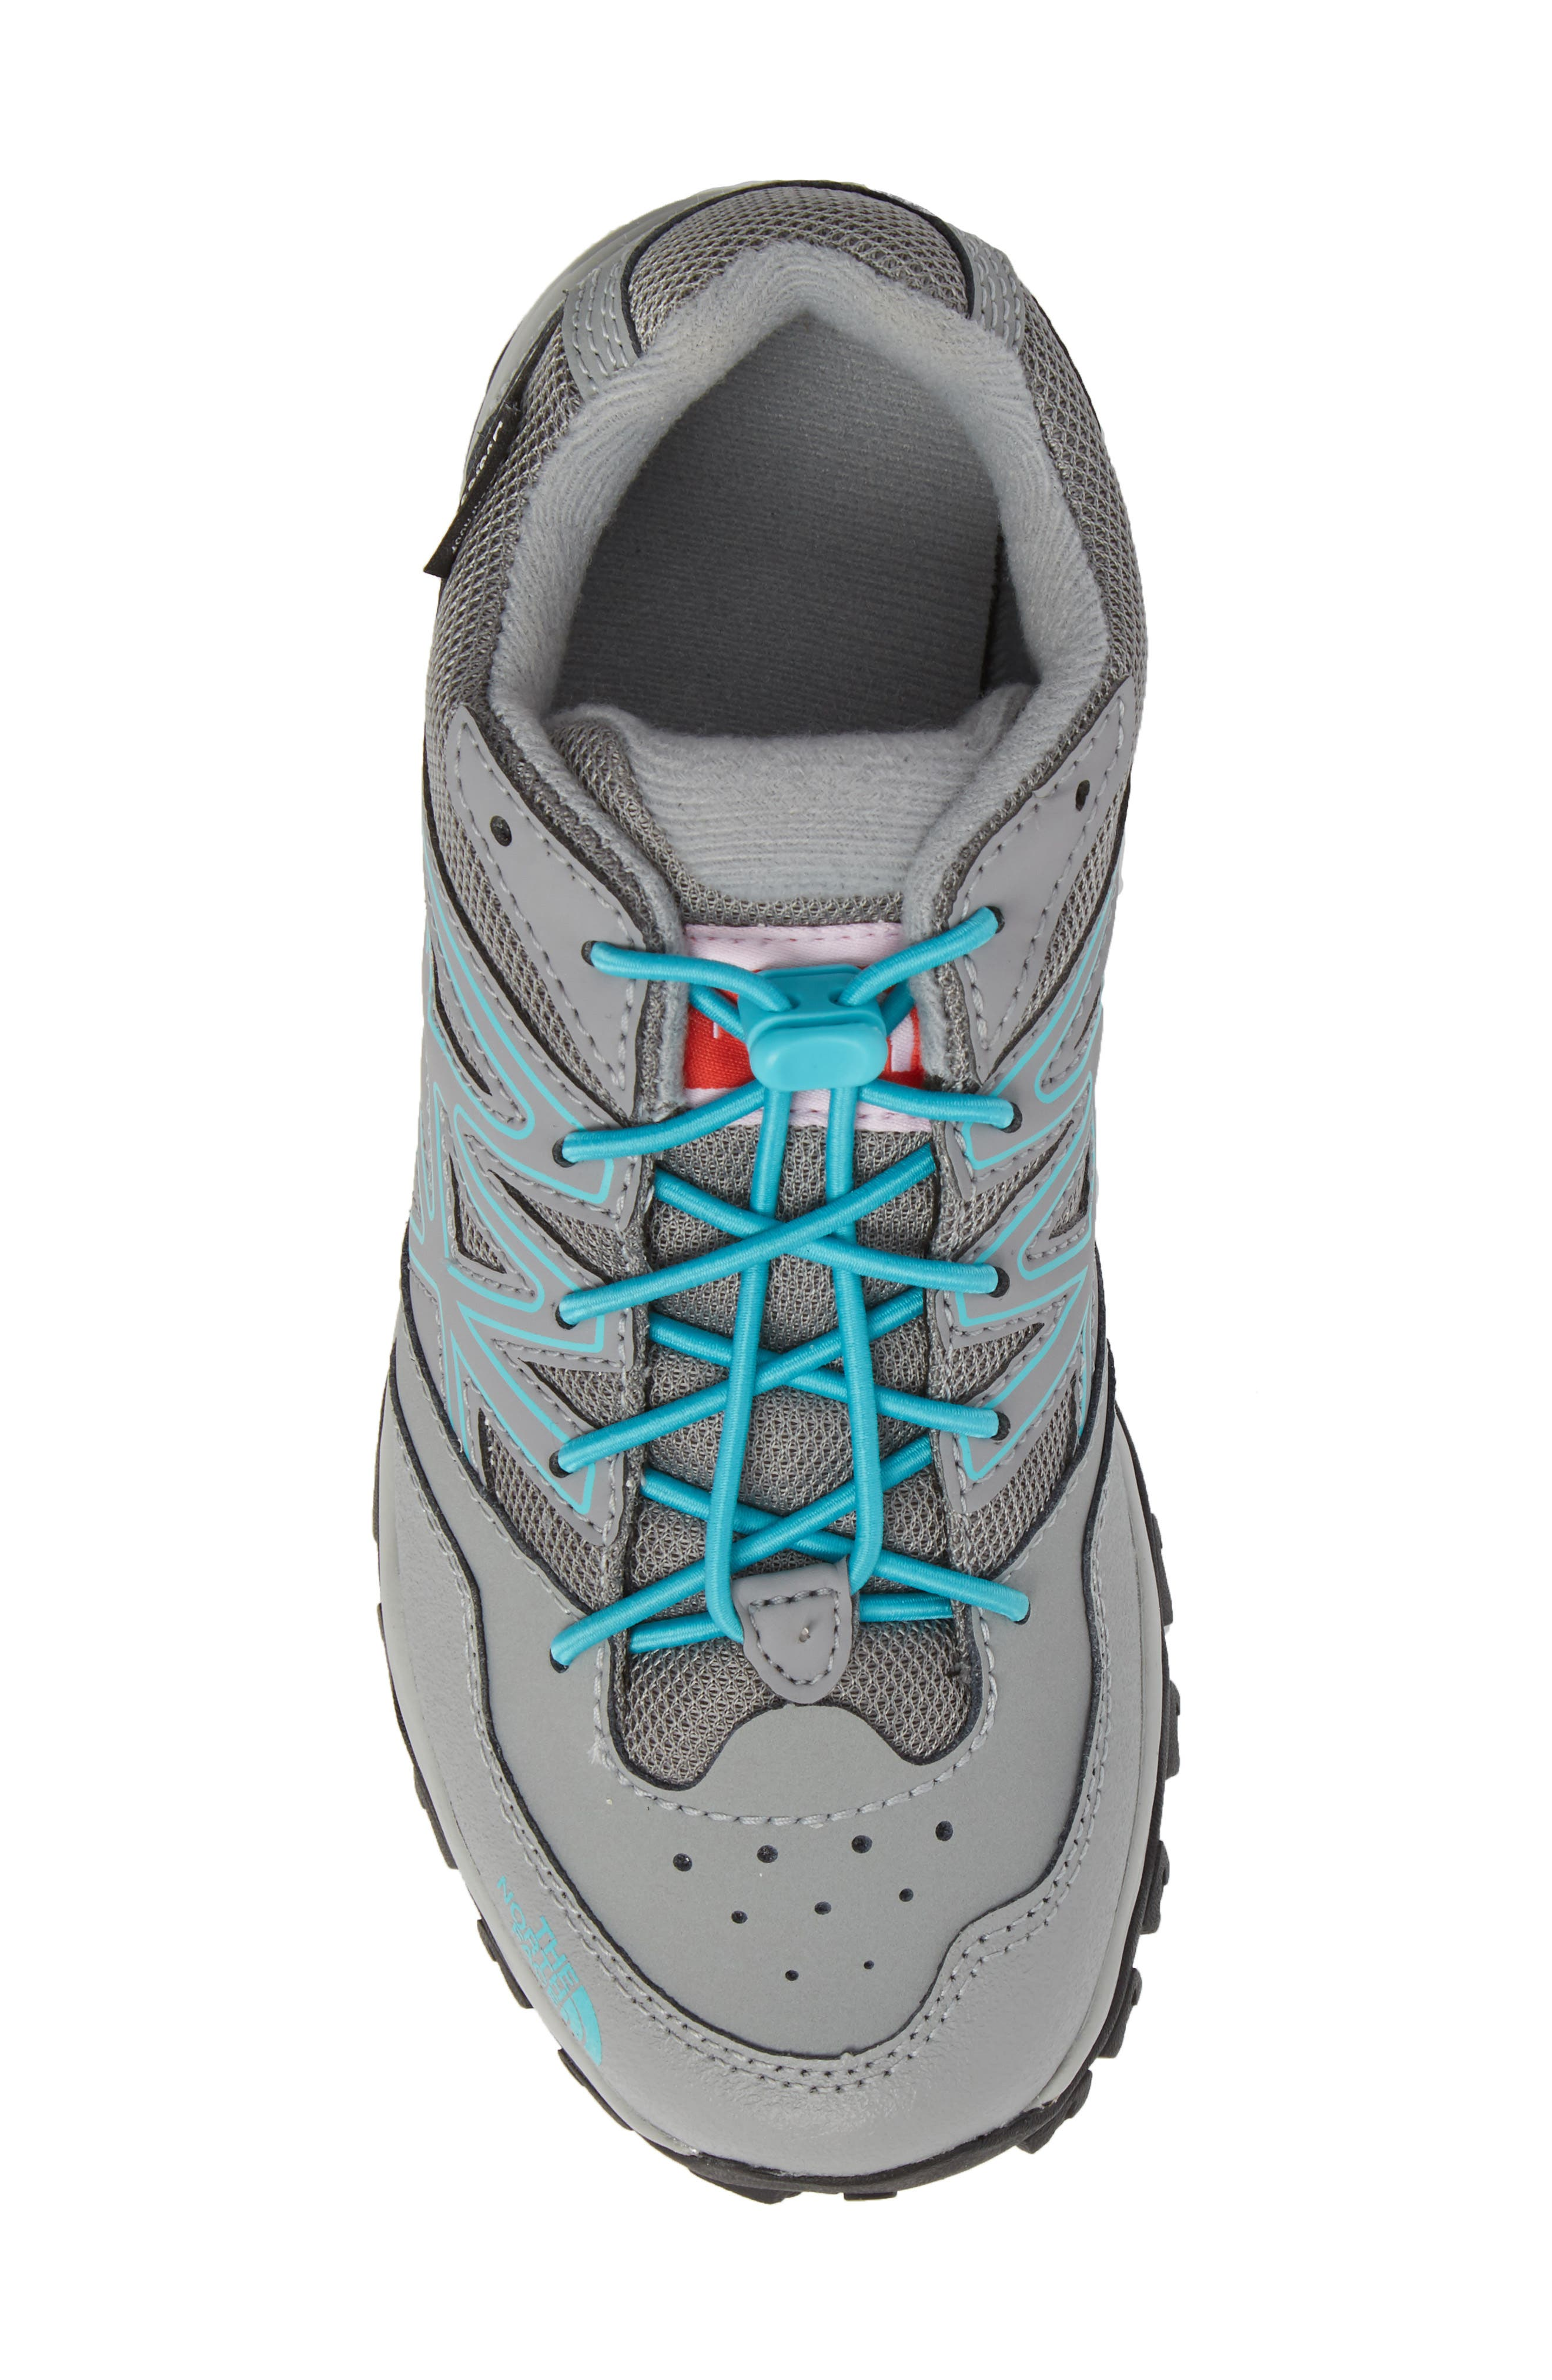 THE NORTH FACE,                             Hedgehog Hiker Boot,                             Alternate thumbnail 5, color,                             022